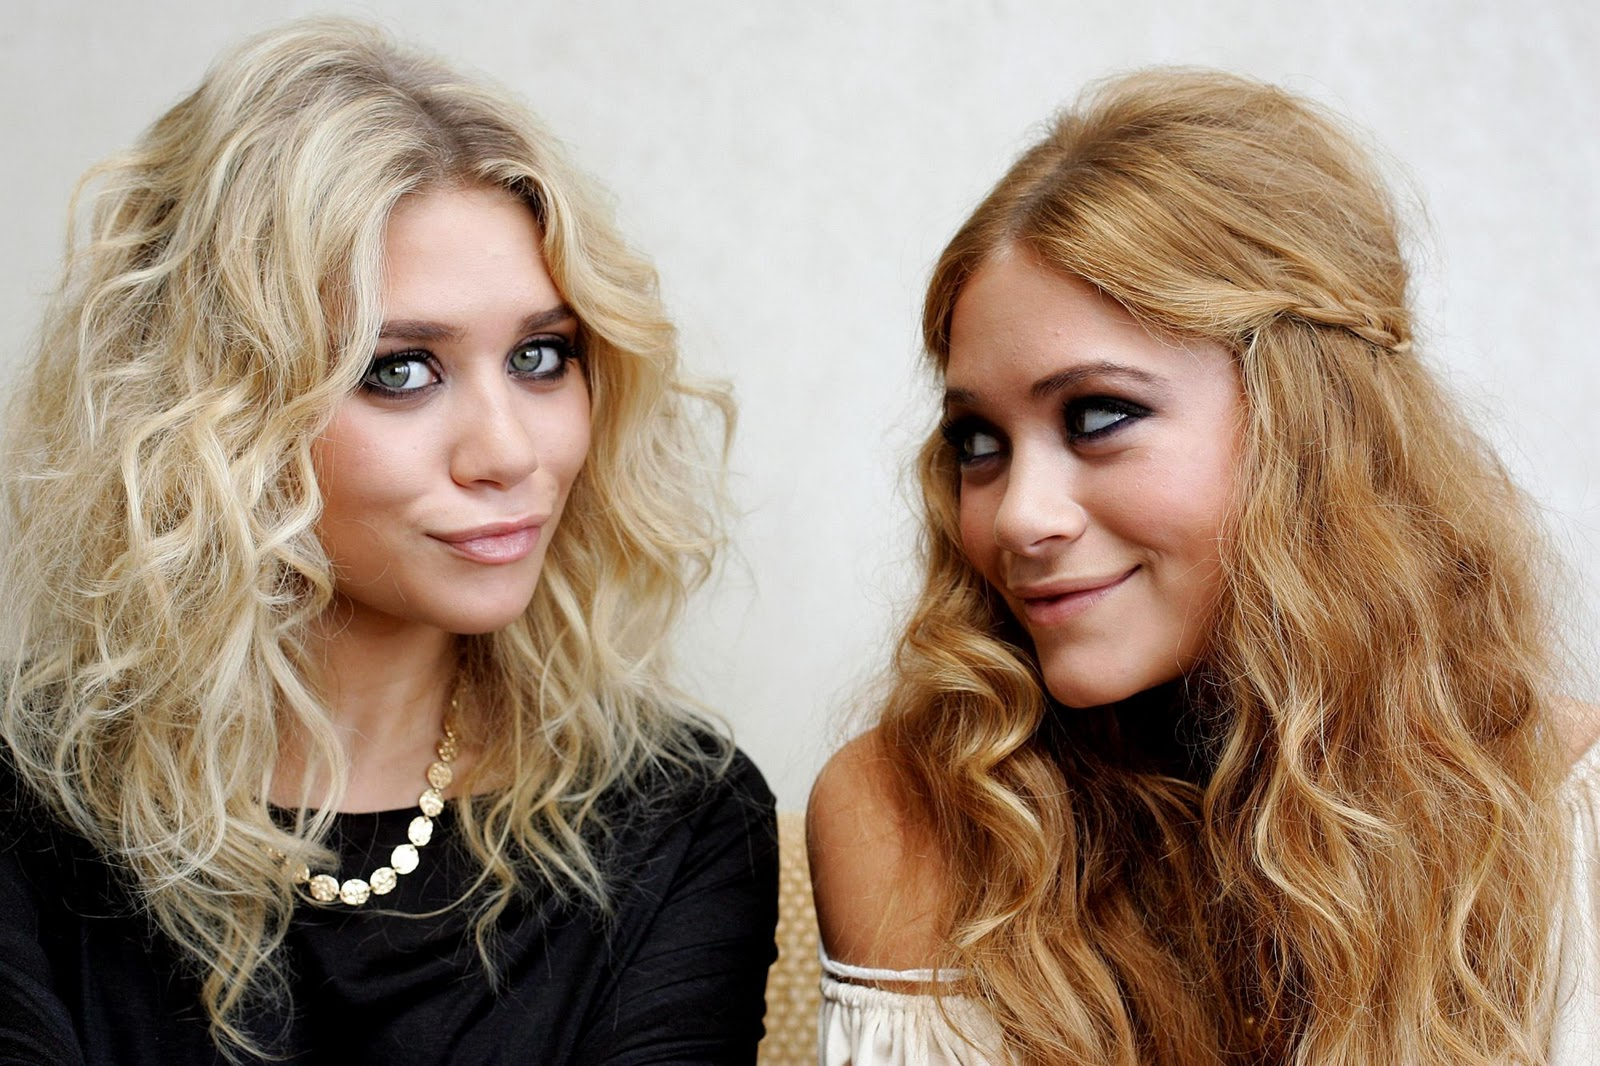 http://4.bp.blogspot.com/-xlnb61KPSUc/TvOyToVdiYI/AAAAAAAADA4/AXFwGyoXavo/s1600/mary-kate_and_ashley_olsen_-_paul_miller_photo_shoot__3_122_1181lo.jpg